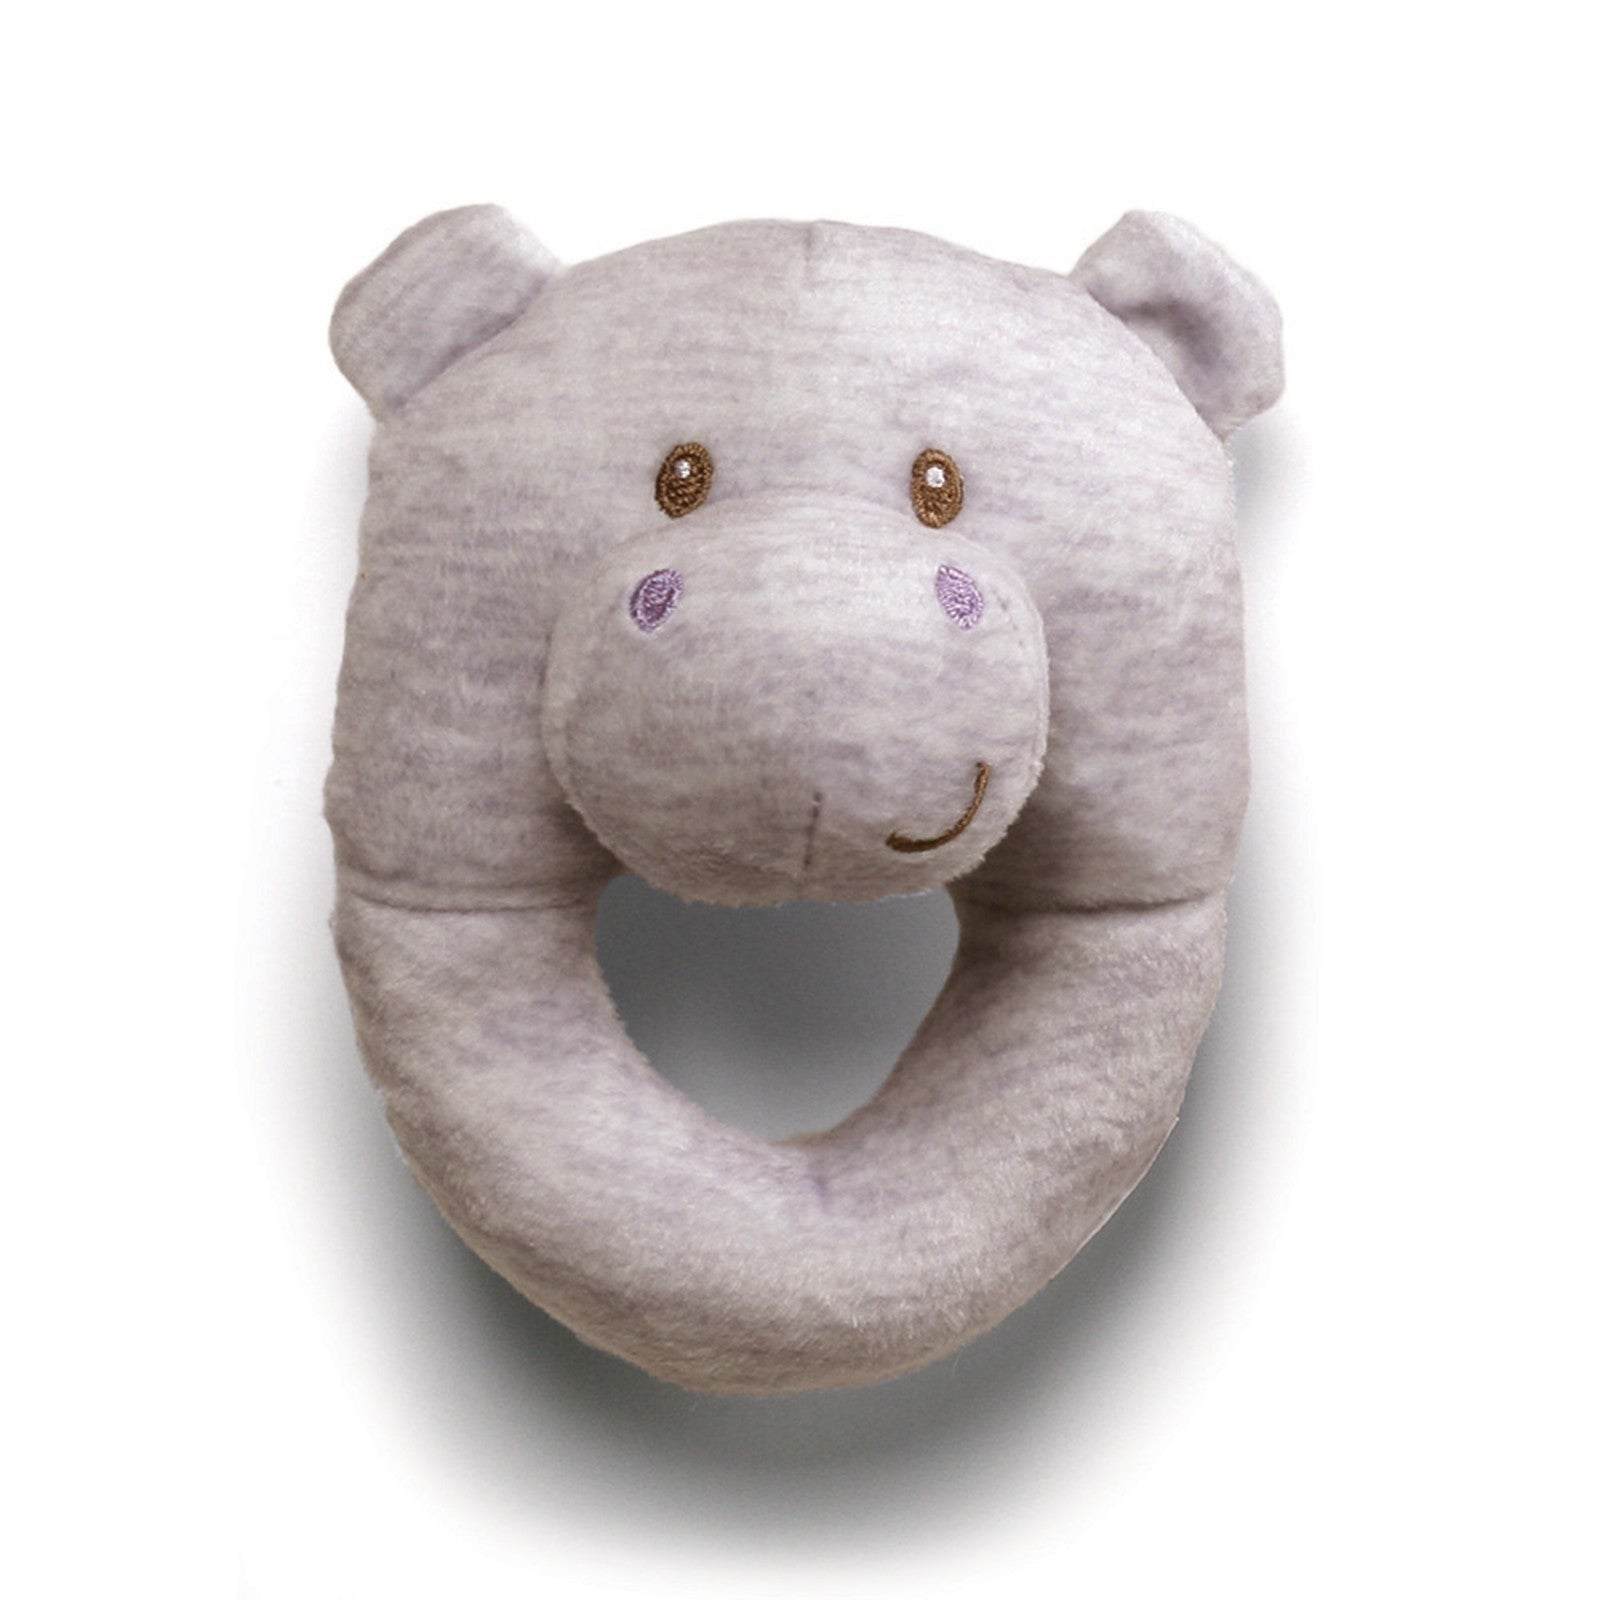 Baby Gund - Playful Pals Collection - Hippo Rattle